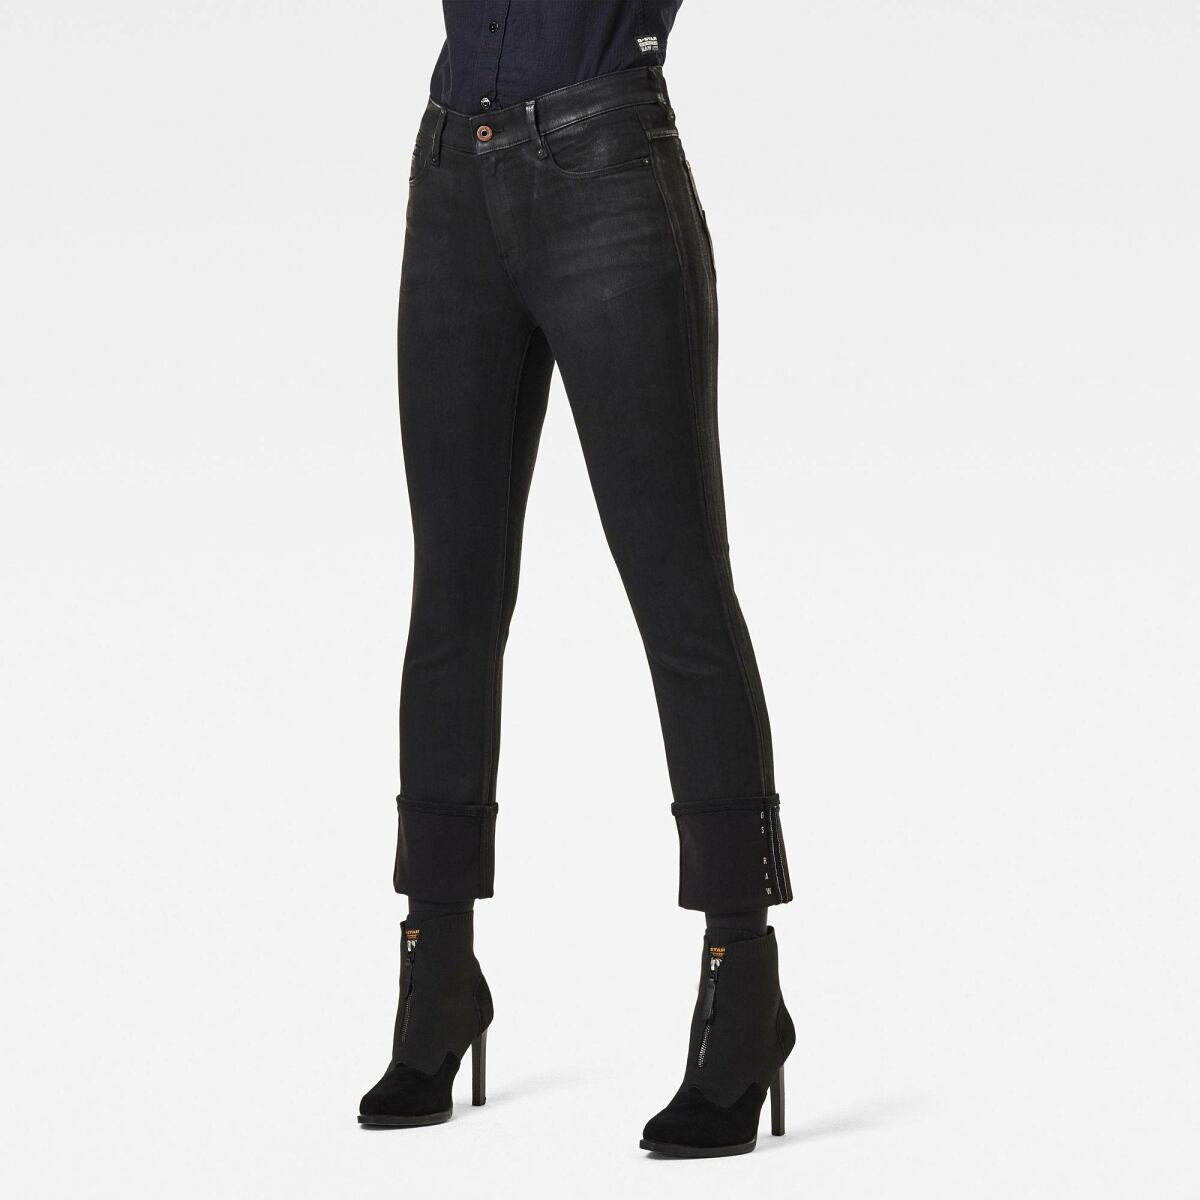 Black Woman Jeans Noxer High Straight Jeans G-Star WOMEN